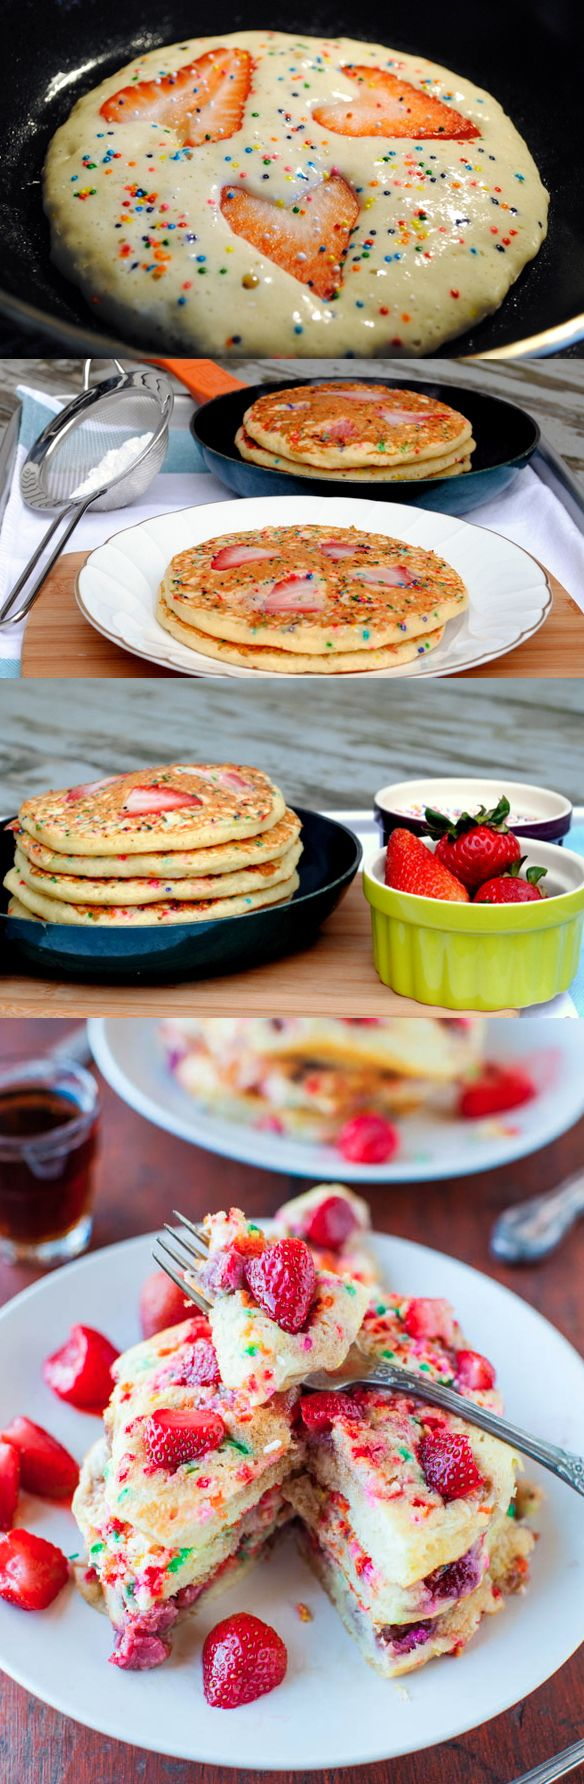 Strawberry Funfetti Pancakes!